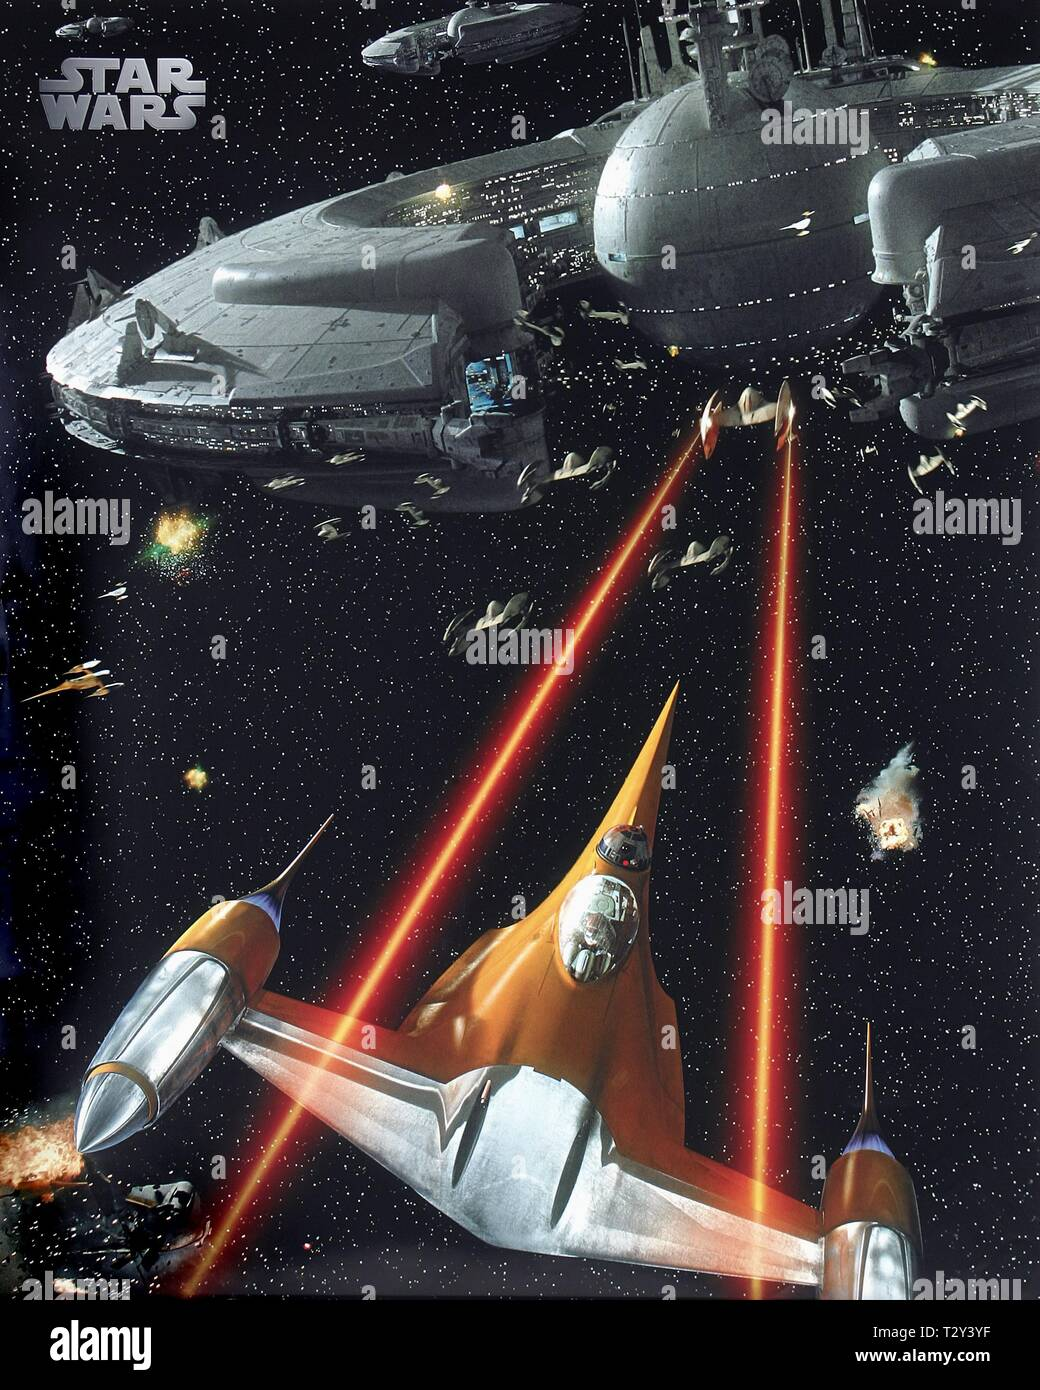 Naboo N 1 Starfighter Lucrehulk Class Droid Control Ship Film Artwork Star Wars Episode Ii Attack Of The Clones 2002 Stock Photo Alamy